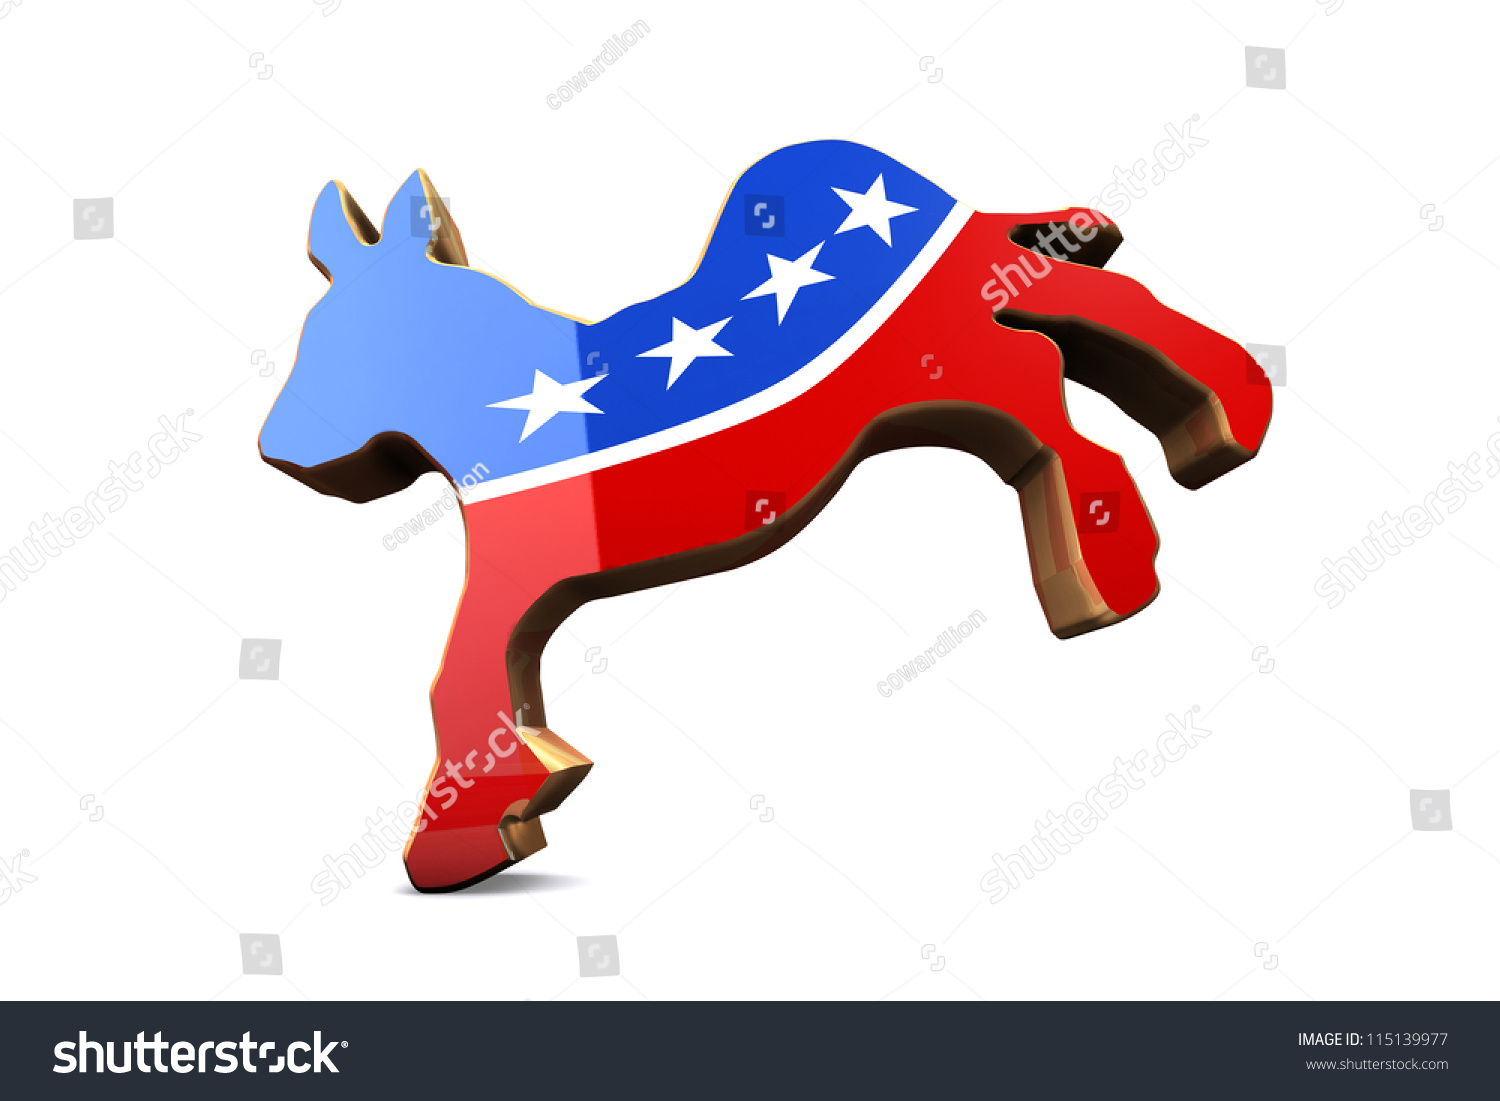 Isolated democrat party symbol stock illustration 115139977 isolated democrat party symbol biocorpaavc Image collections